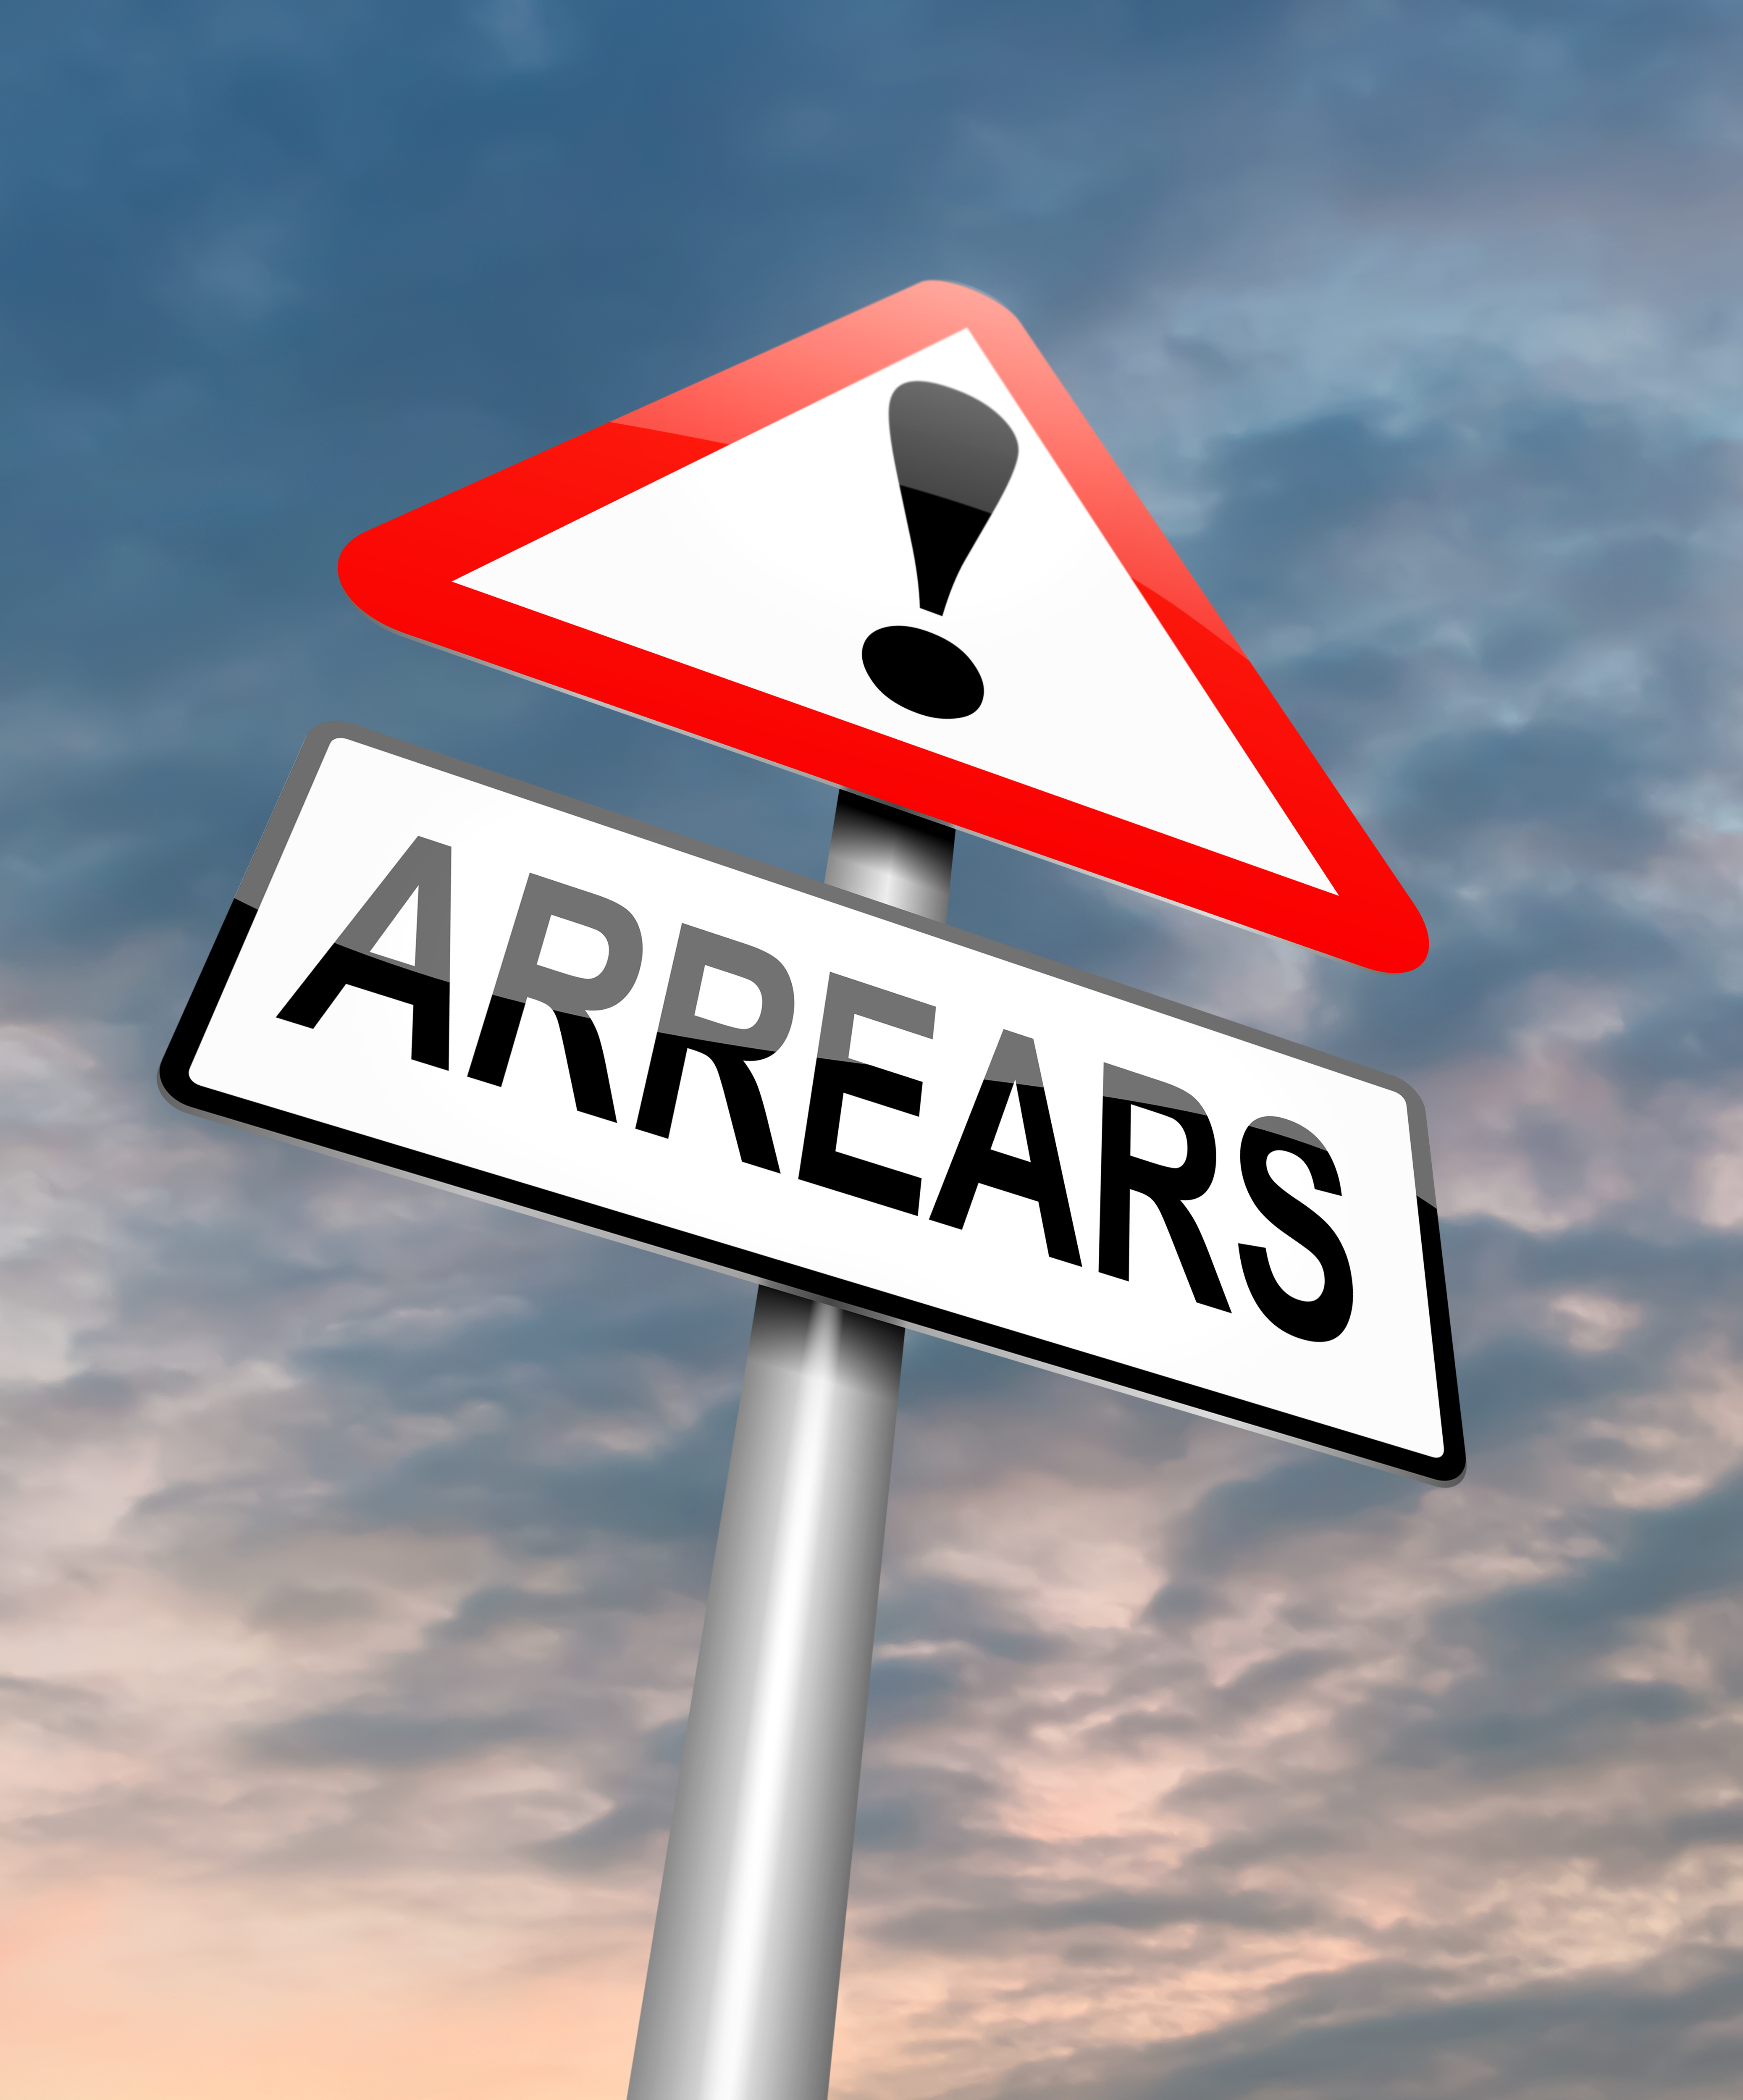 mortgage arrears sign